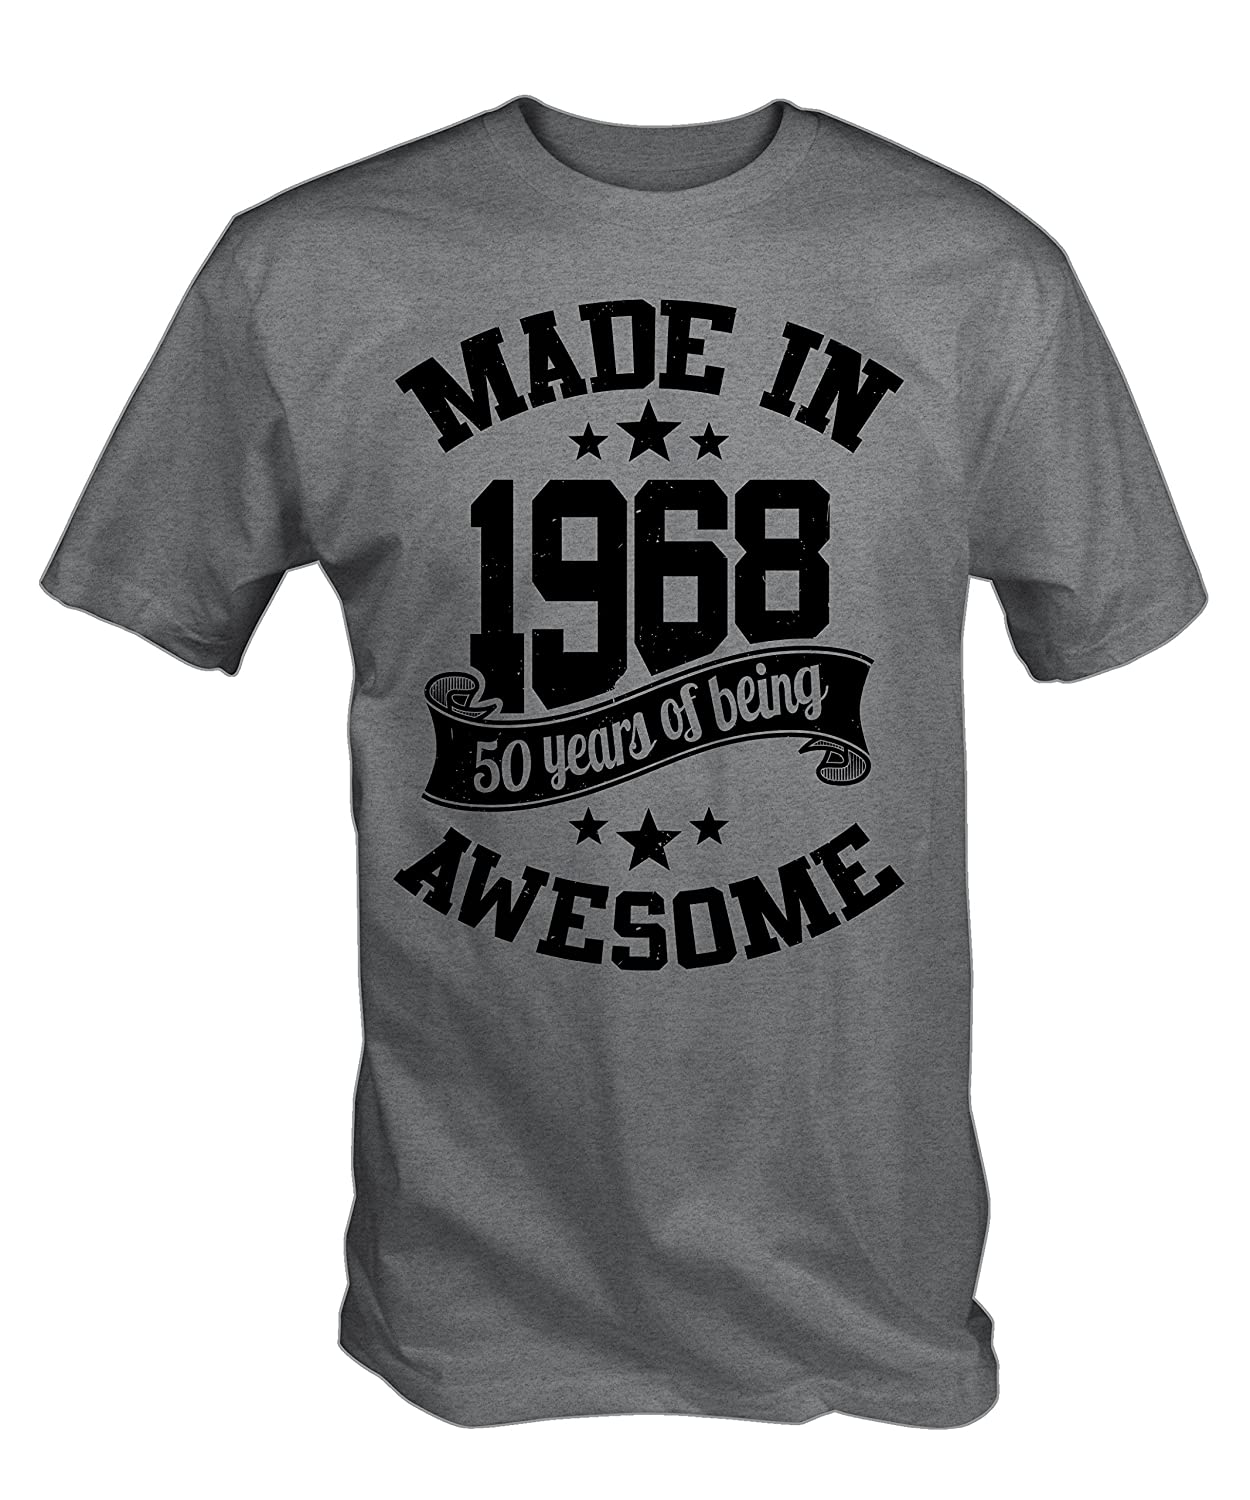 70c8ca370 Made in 1968 50 Years of Being Awesome T Shirt: Amazon.co.uk: Clothing